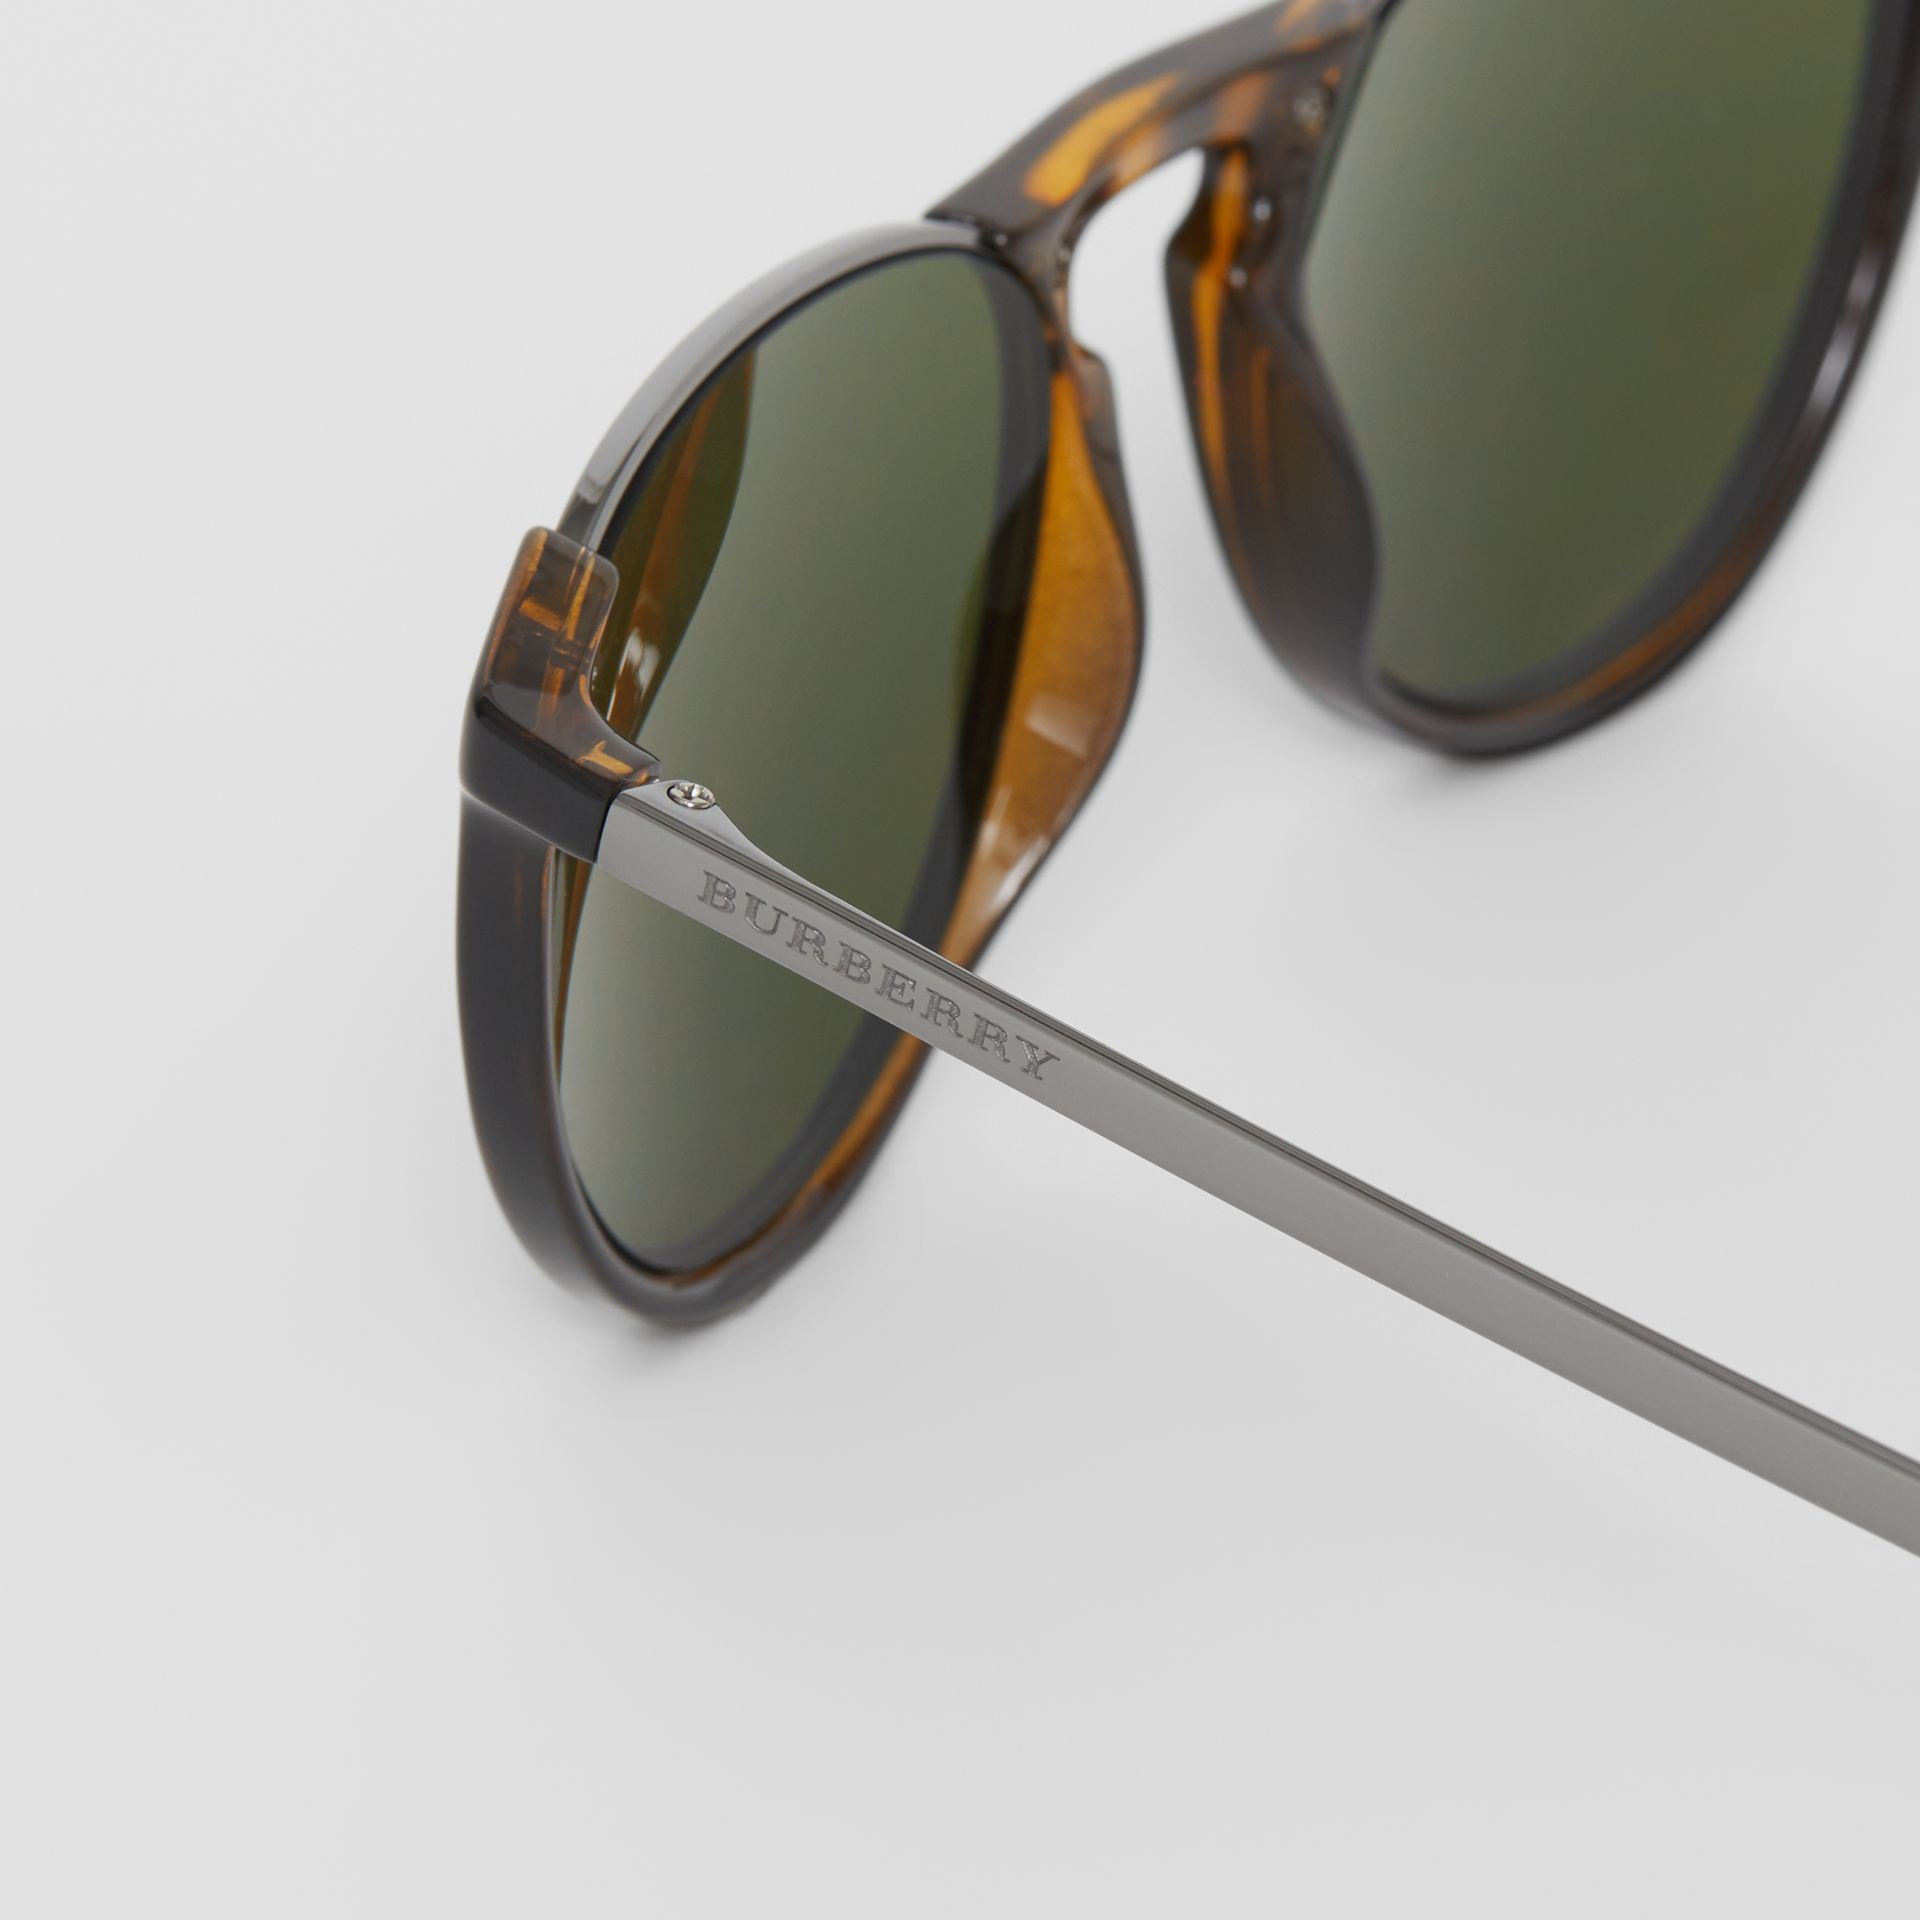 Keyhole Pilot Round Frame Sunglasses in Tortoise Shell - Men | Burberry - gallery image 1